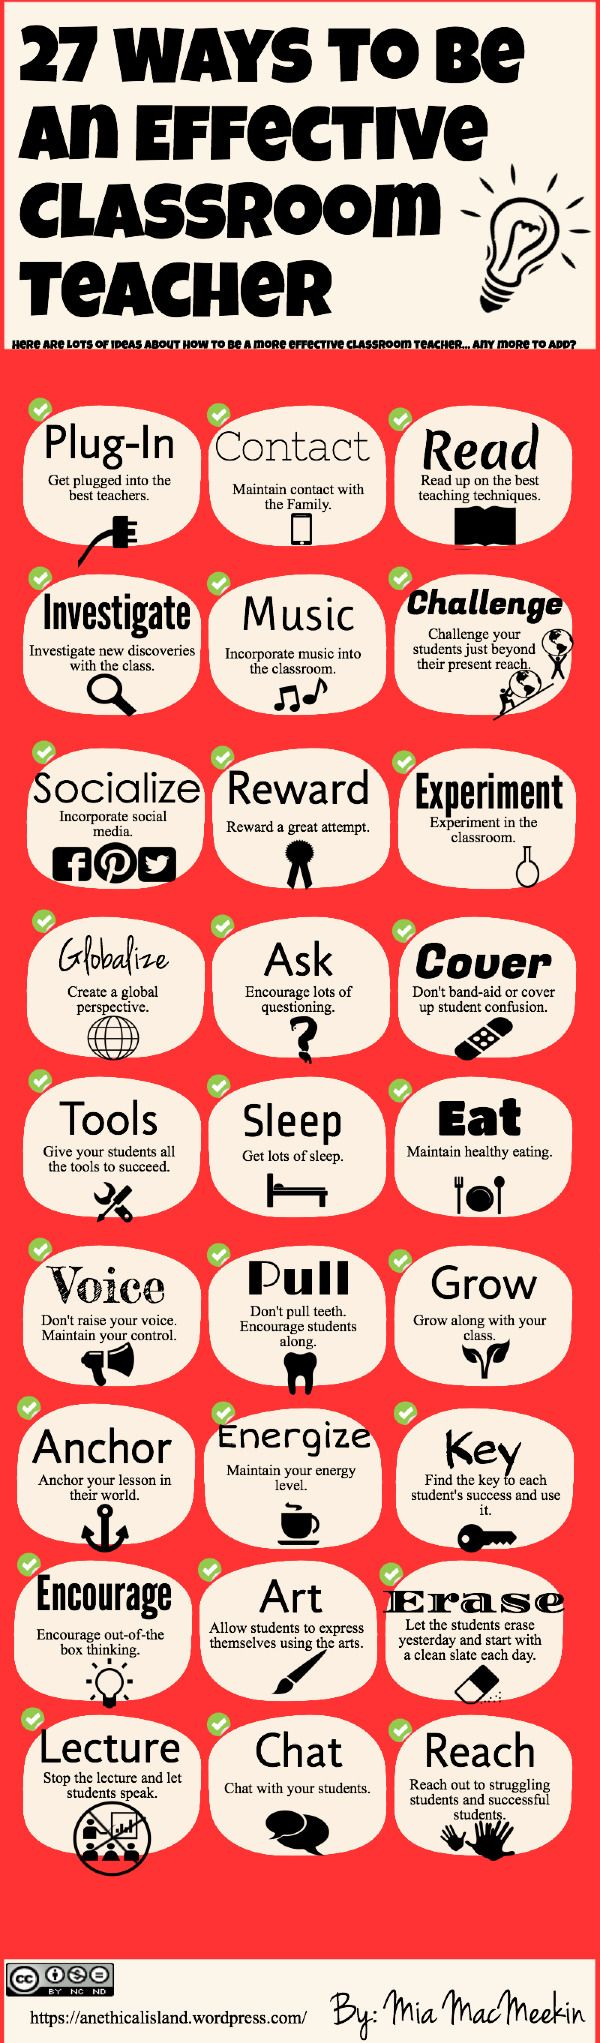 27 ways how to be an effective classroom teacher | Created in #free @Piktochart #Infographic Editor at www.piktochart.com